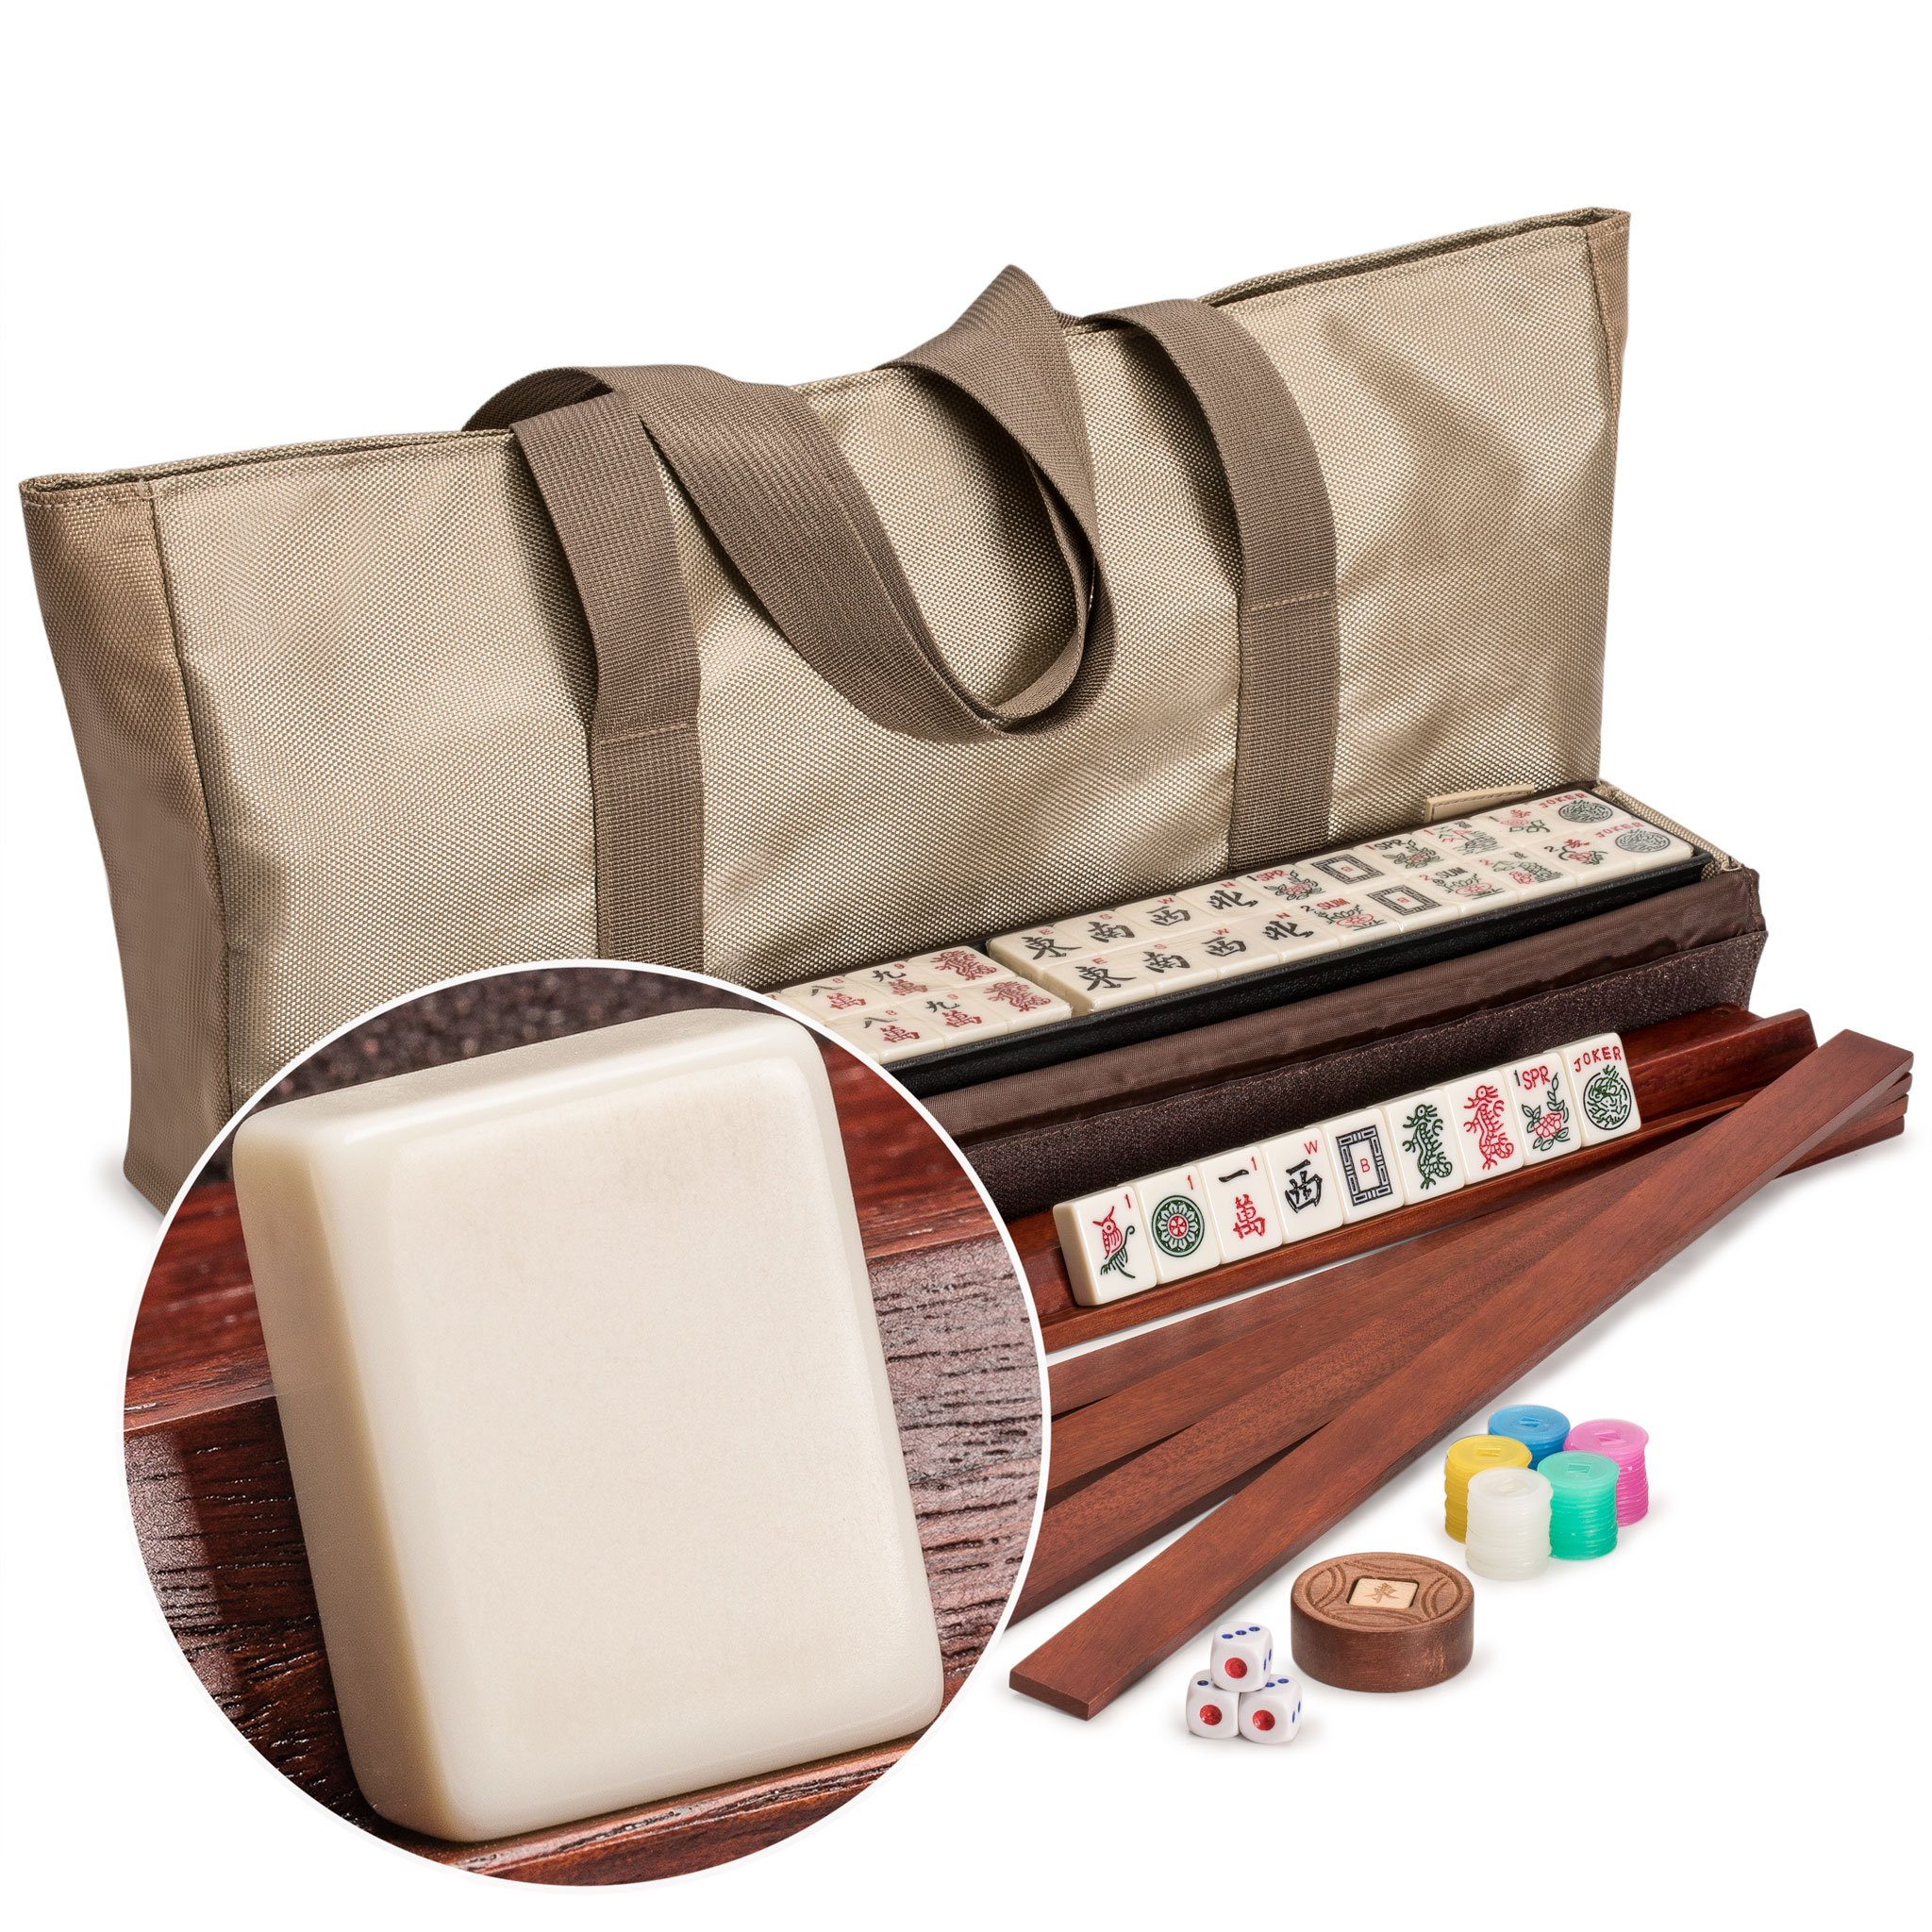 """Yellow Mountain Imports American Mahjong Set, """"The Mojave"""" (Ivory) - All Accessories Included - Complete 166 Tile Set - 4 All-in-One Racks - Scratch Resistant - Versatile Set"""